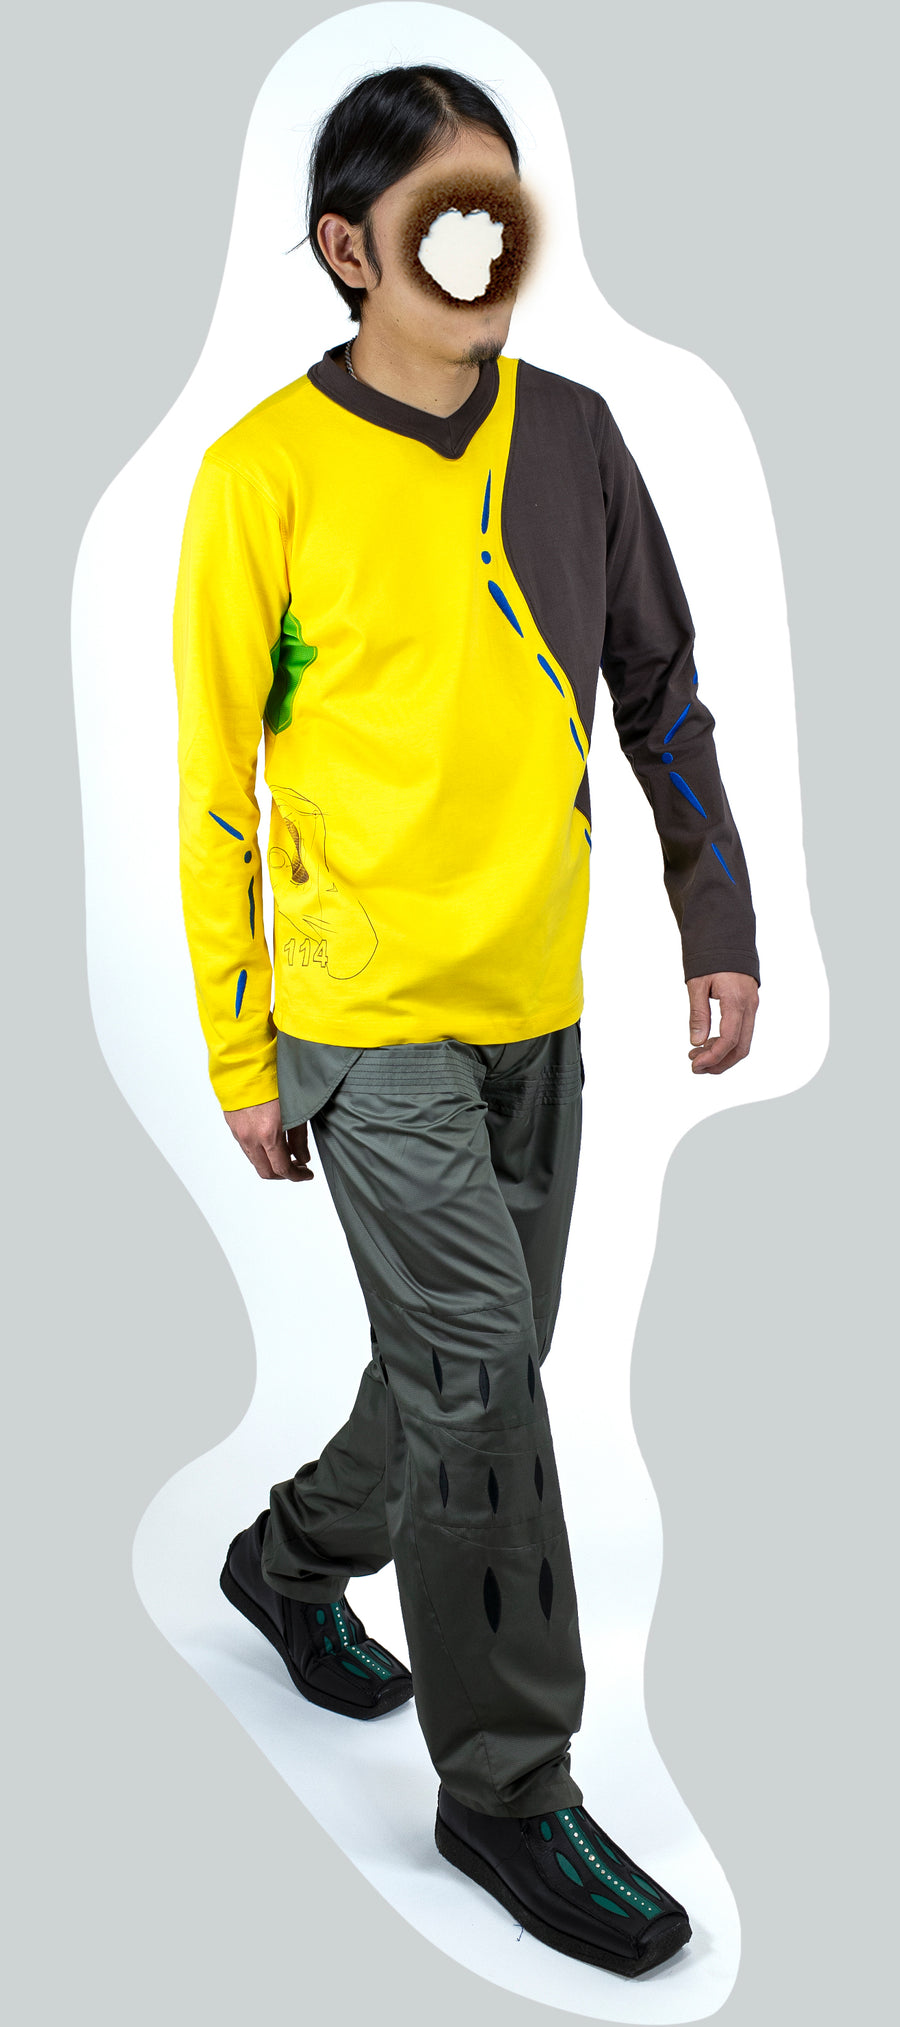 00092020 ARCHERY LS SOLAR YELLOW